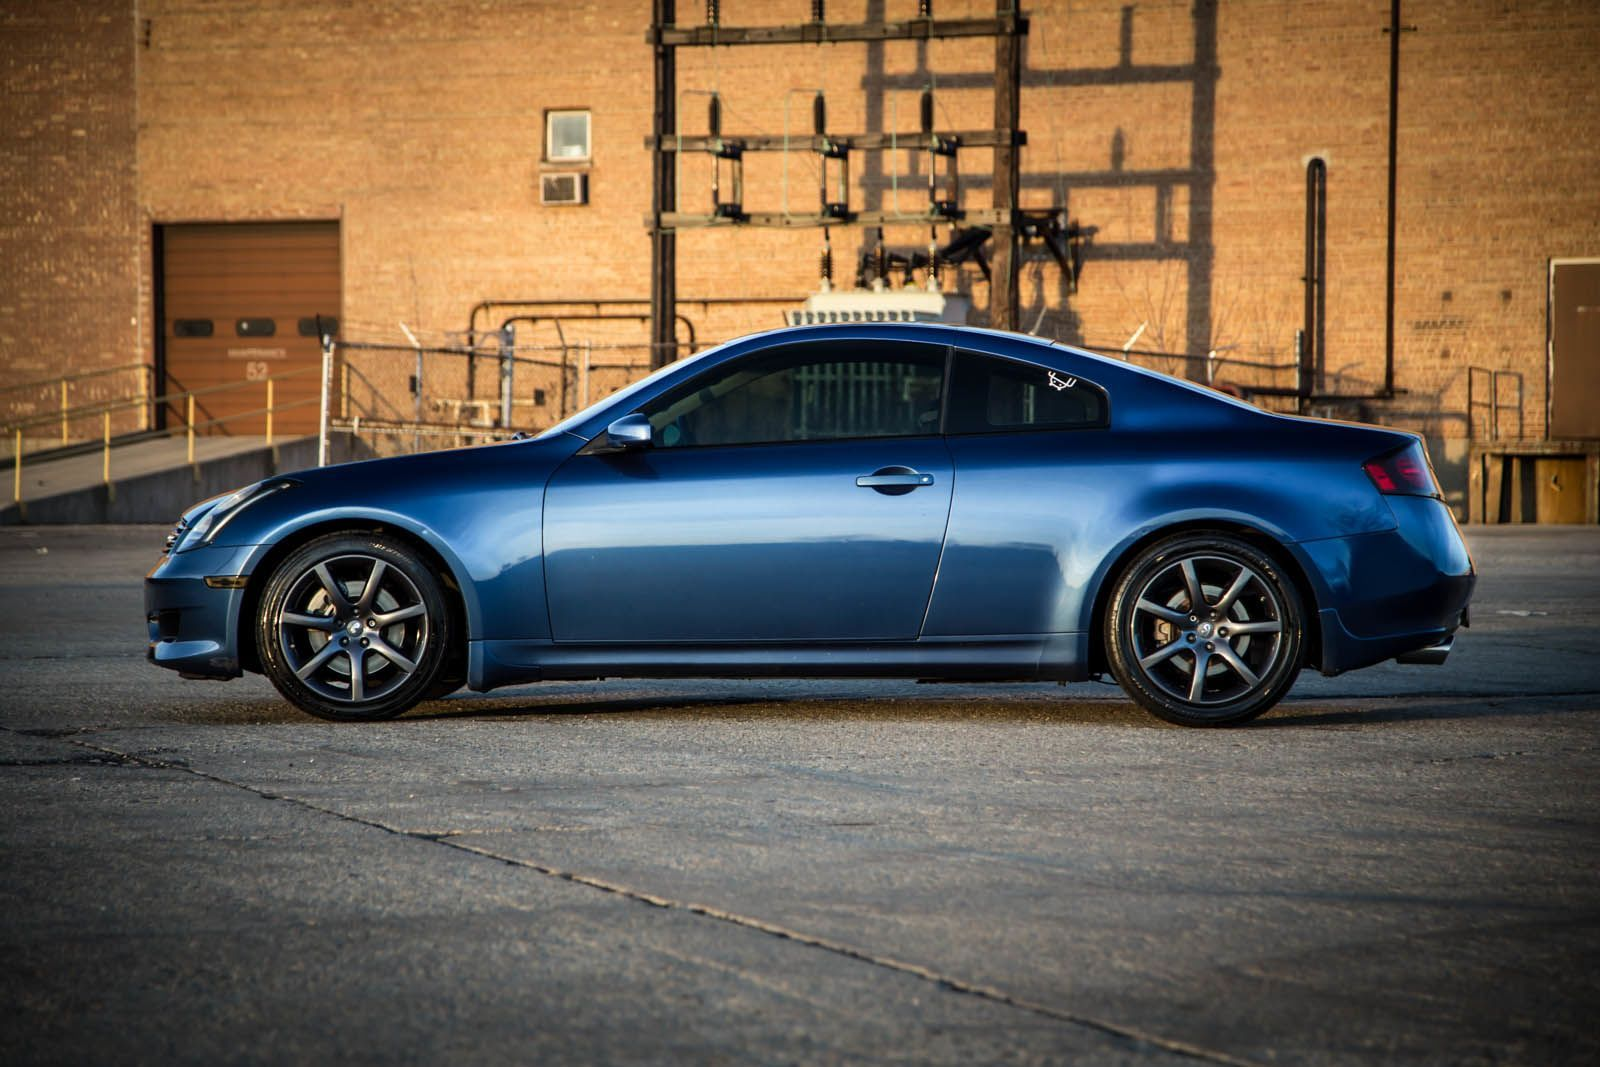 g35 coupe athens blue Google Search Dream cars